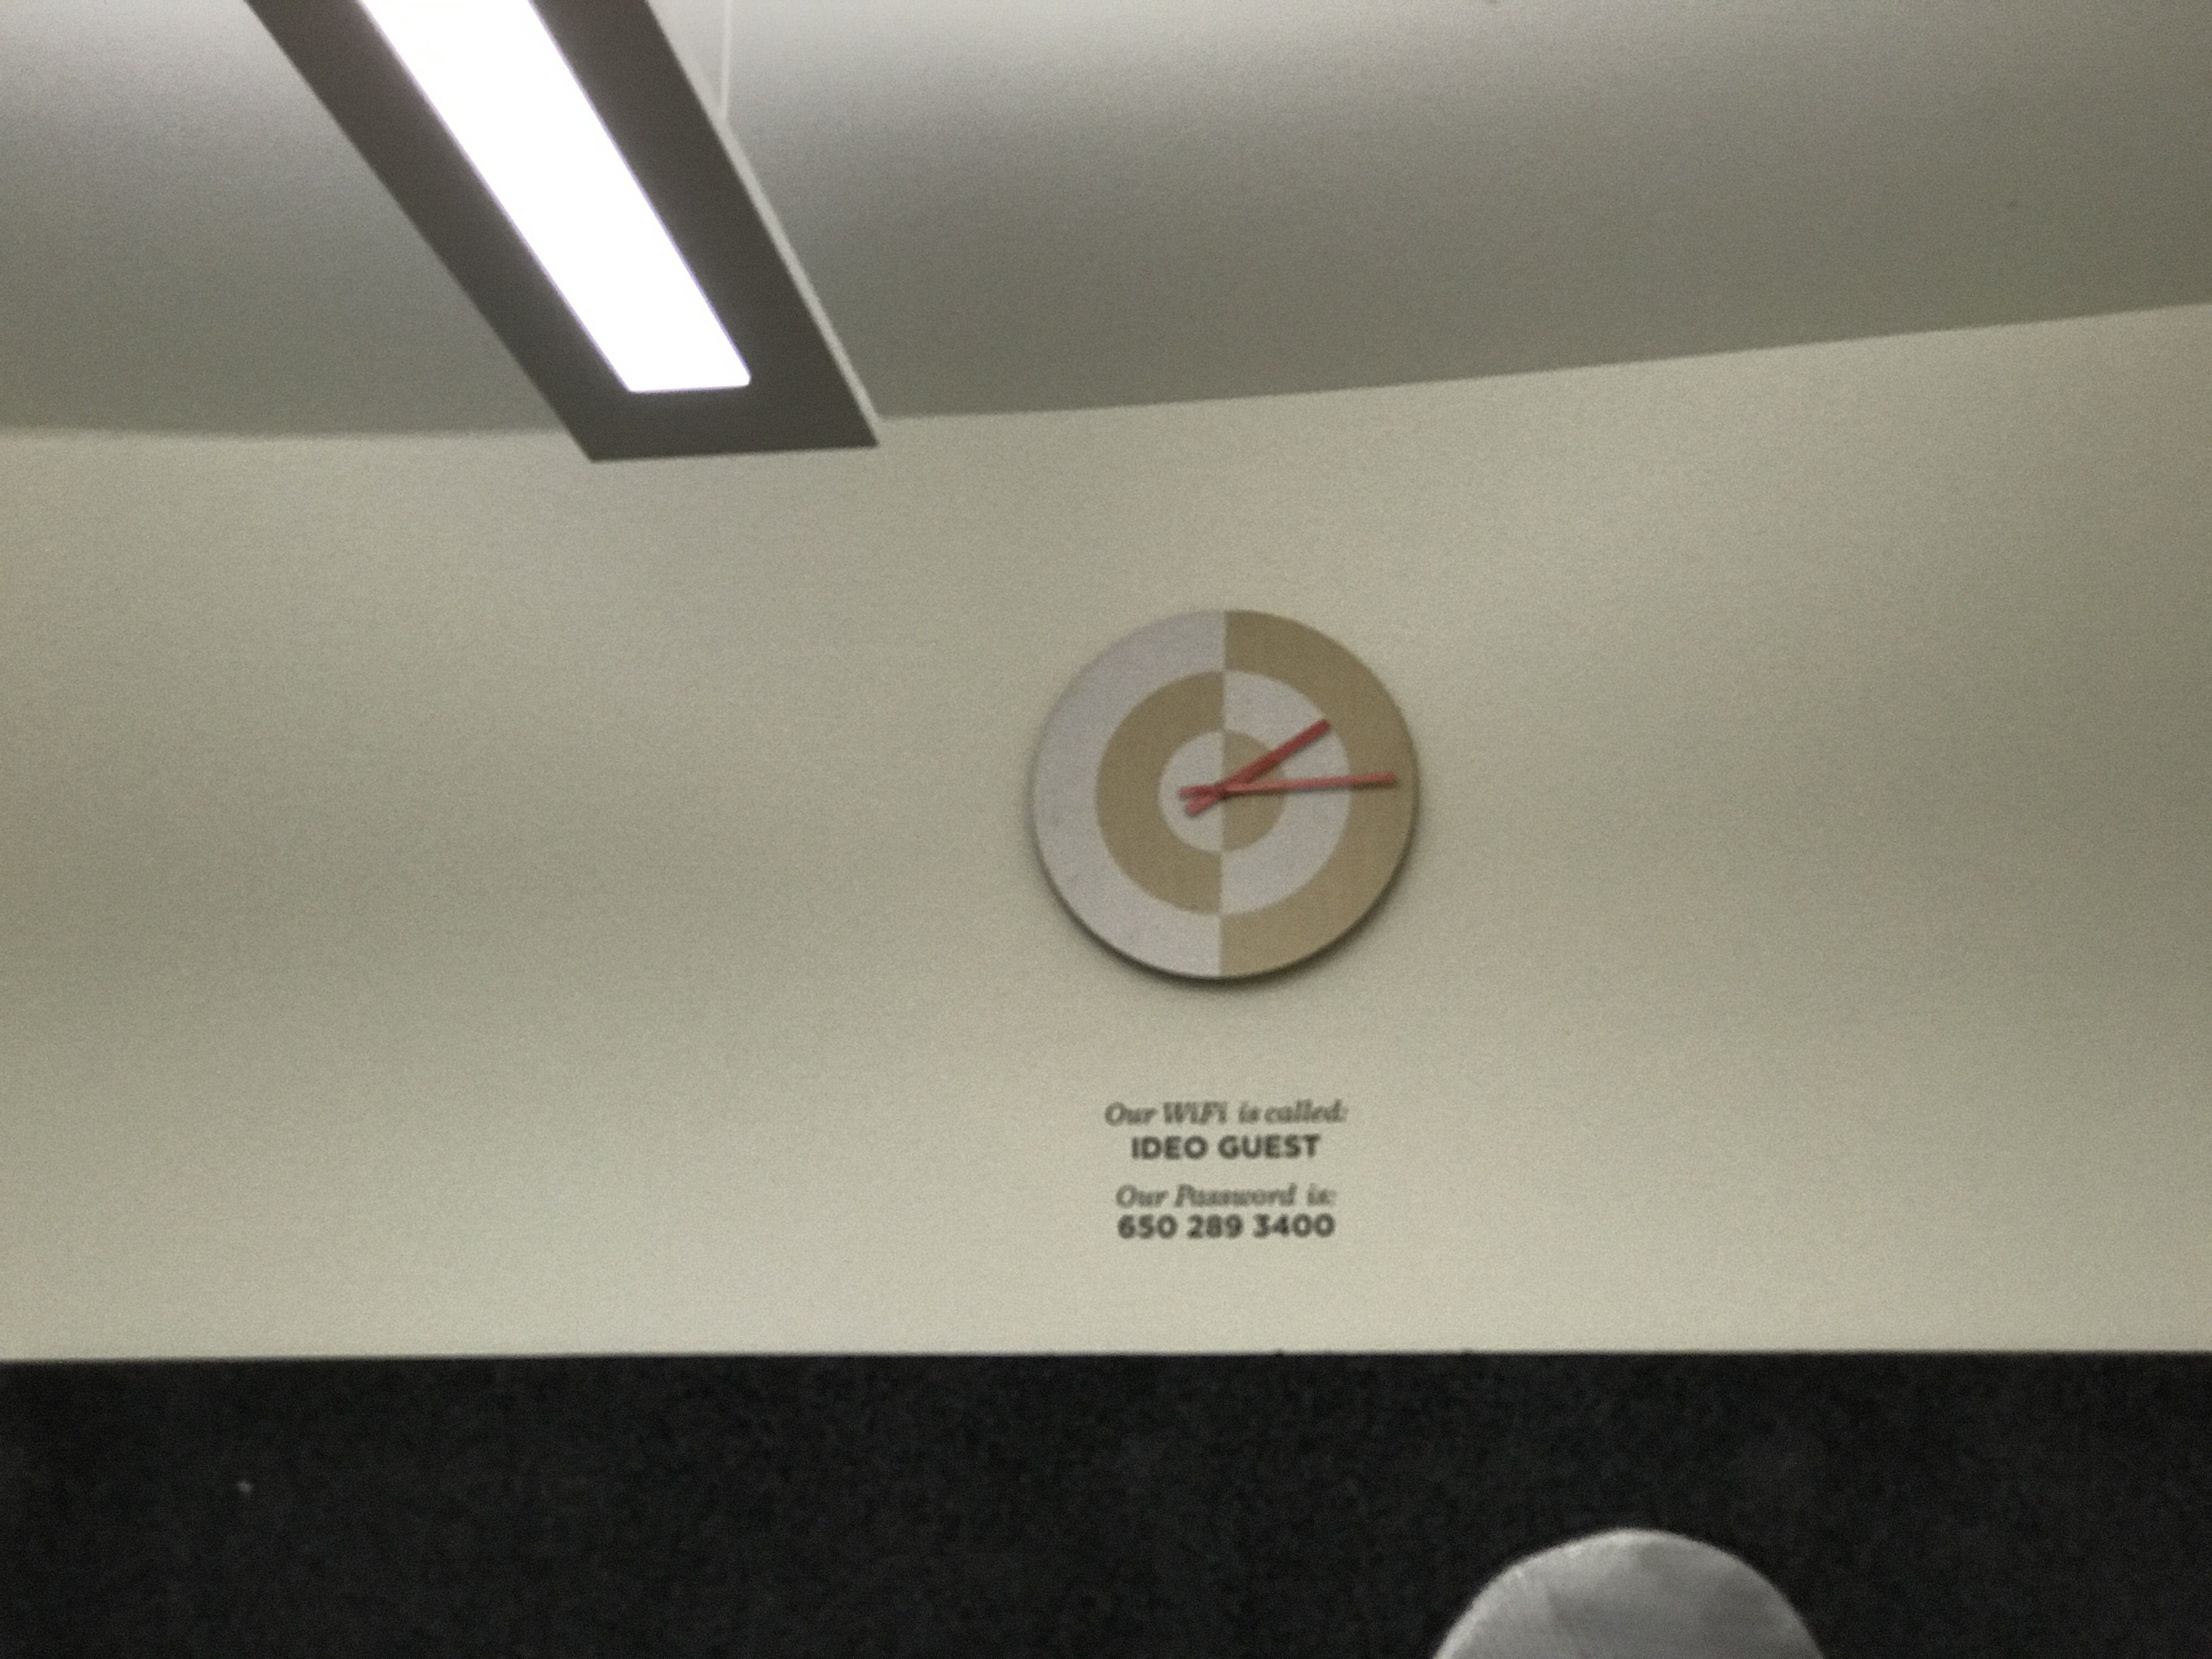 Great idea to put guest wireless code on the wall from ideo